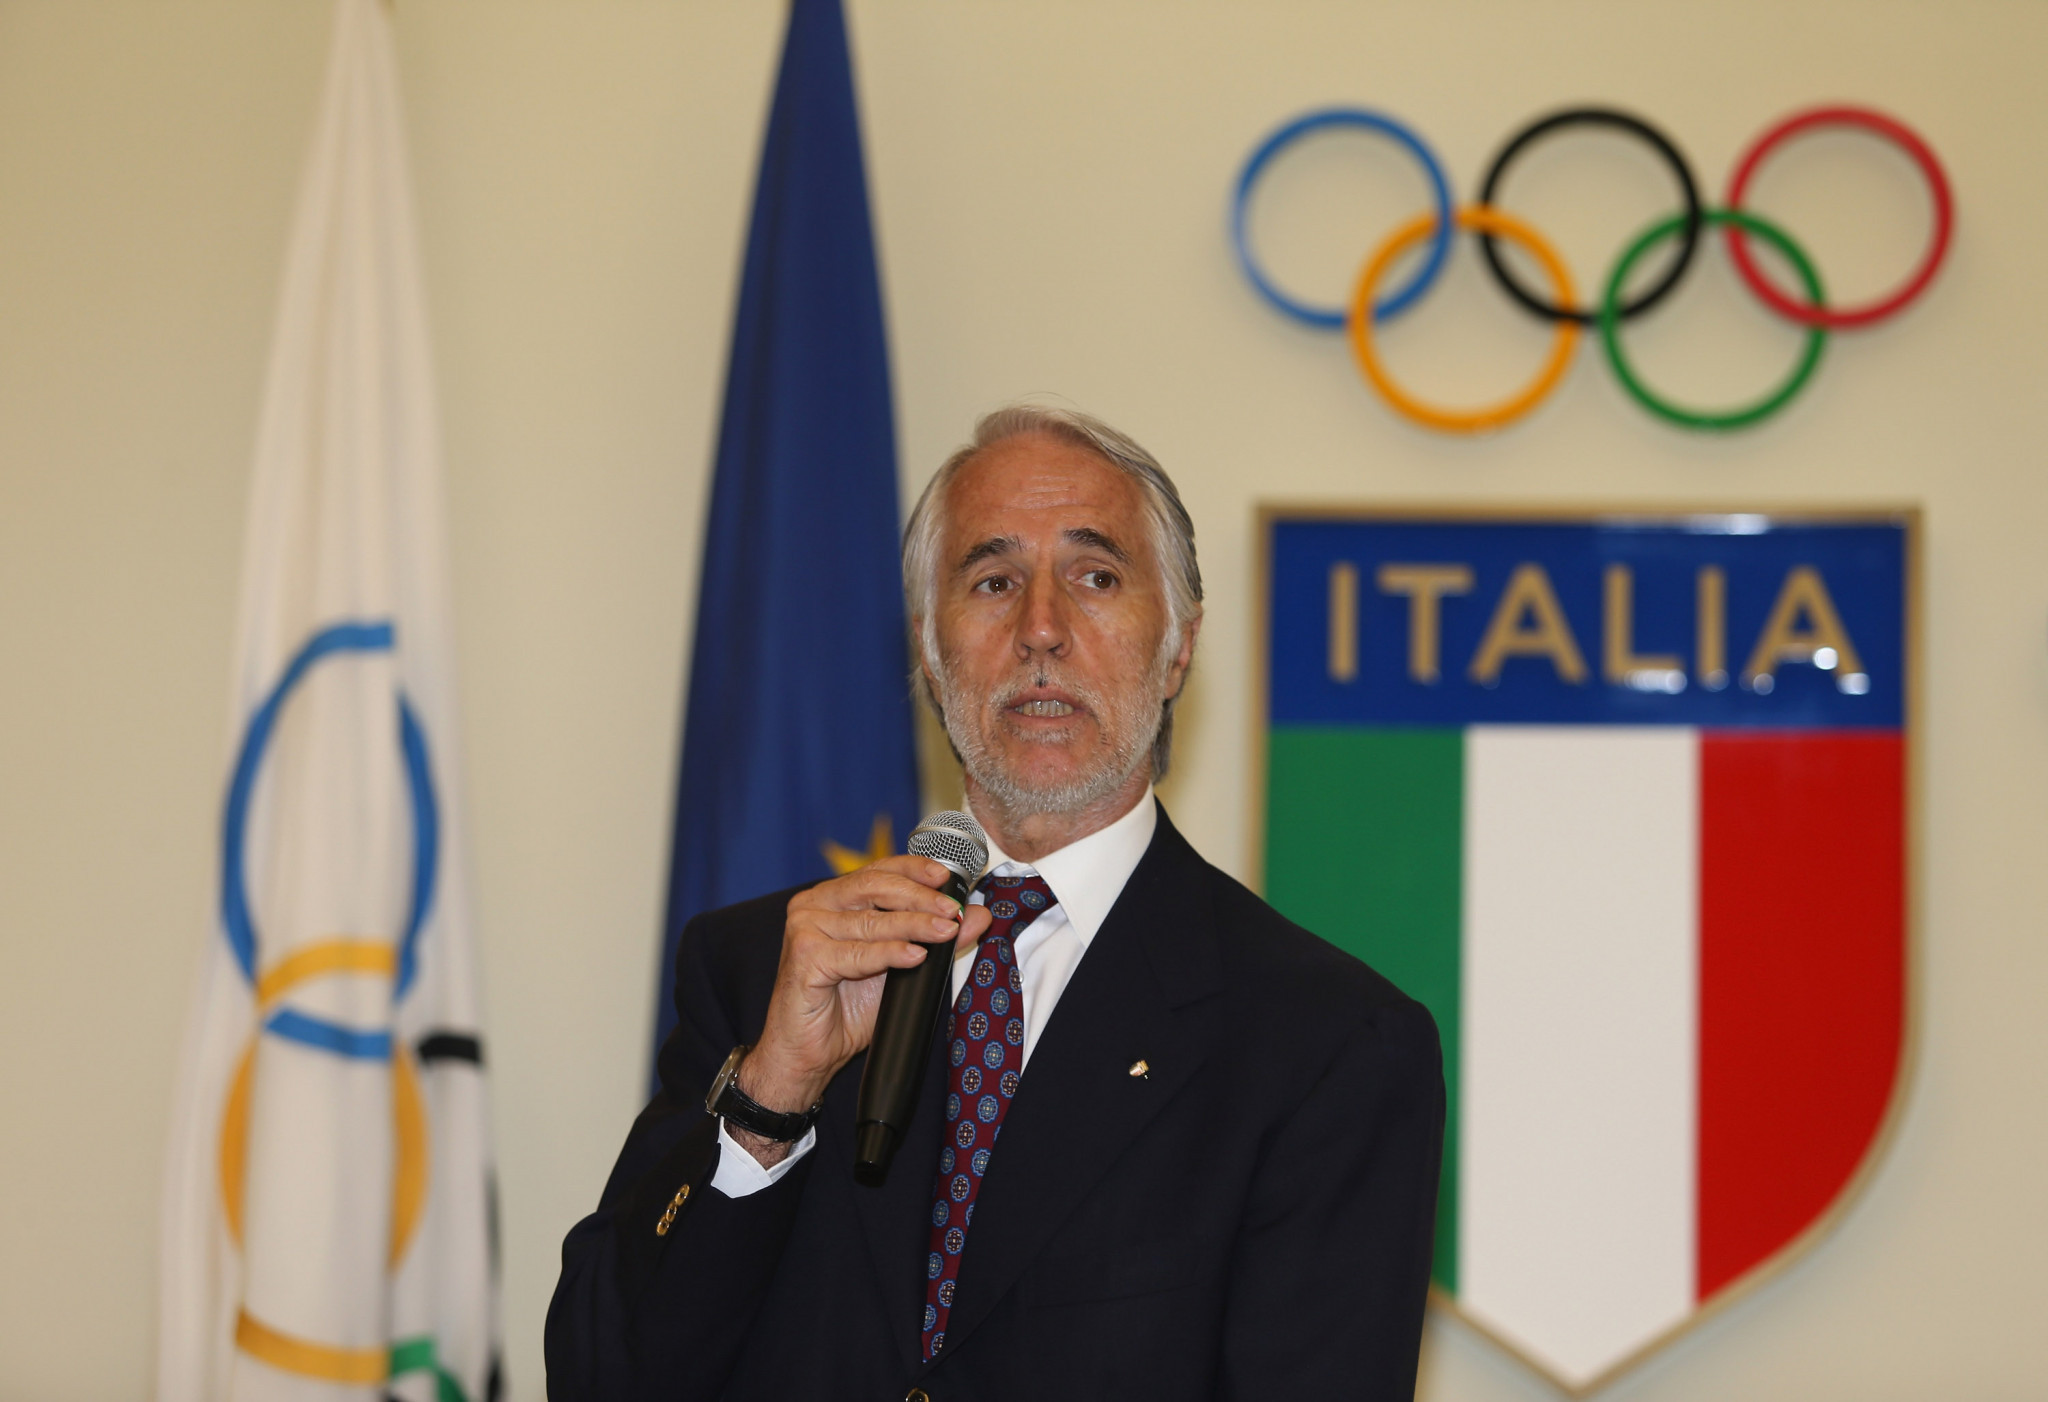 Giovanni Malagò had previously said an Italian Government was needed to help the 2026 Winter Olympic bid ©Getty Images